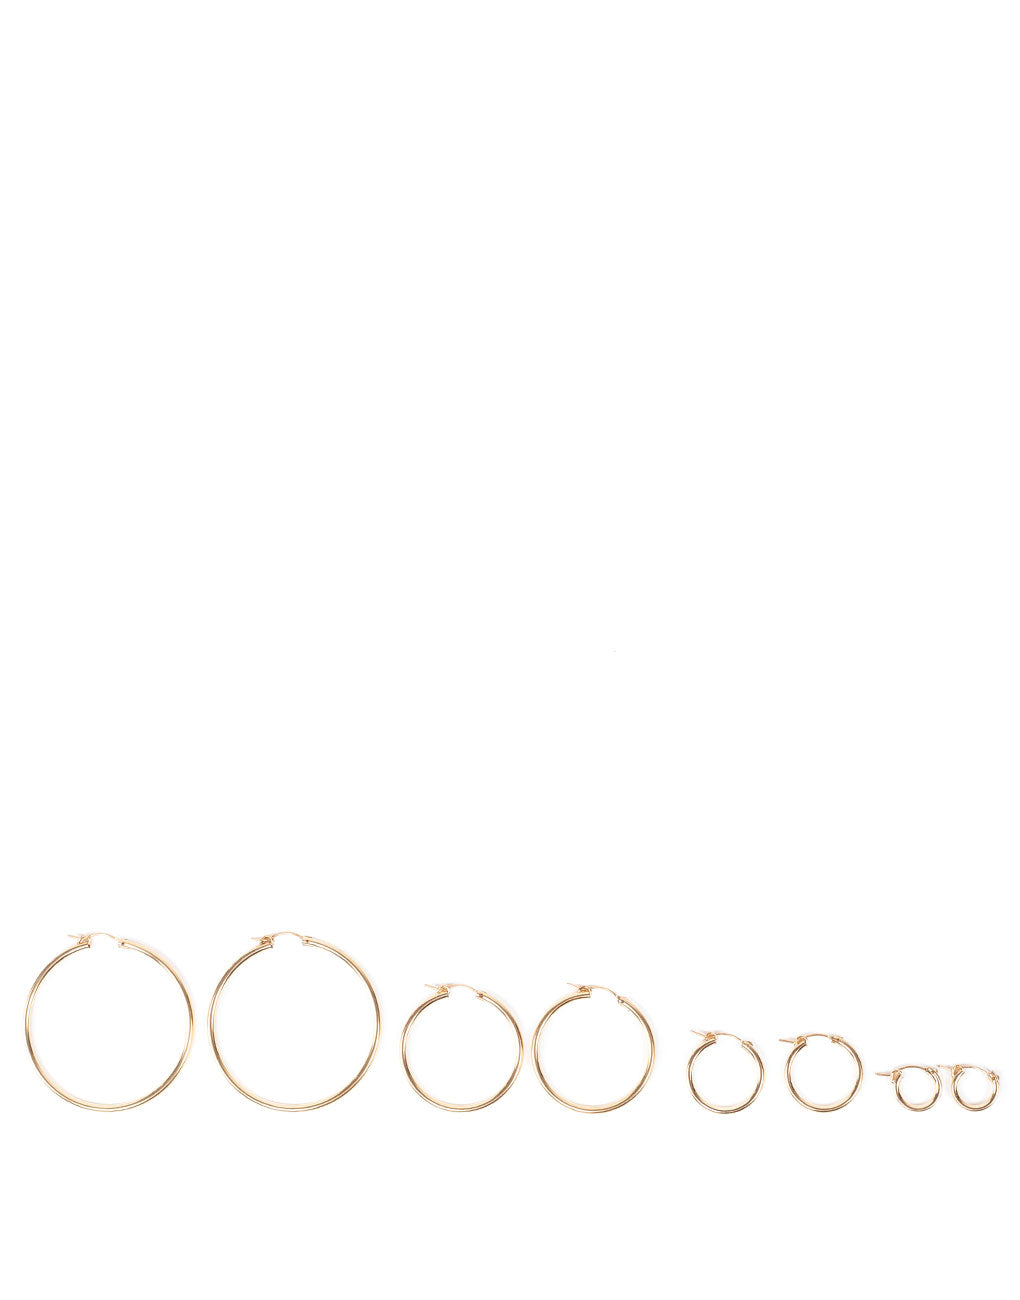 Hoop Earrings - All Sizes | The Little Market